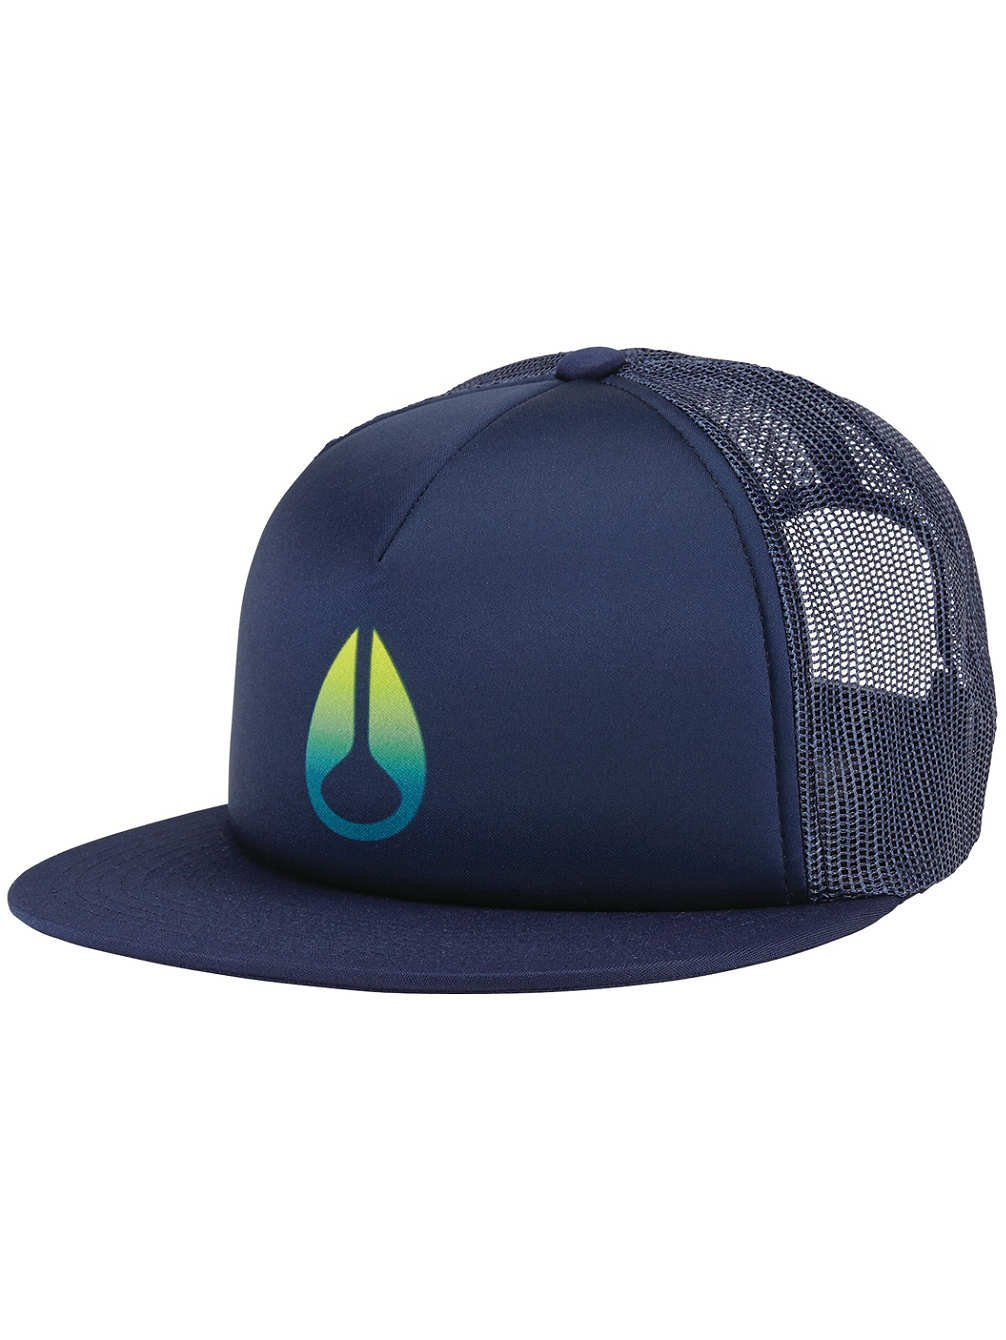 Nixon Ridge Trucker Hat -Spring 2017-(C2624-2642) - Navy ...